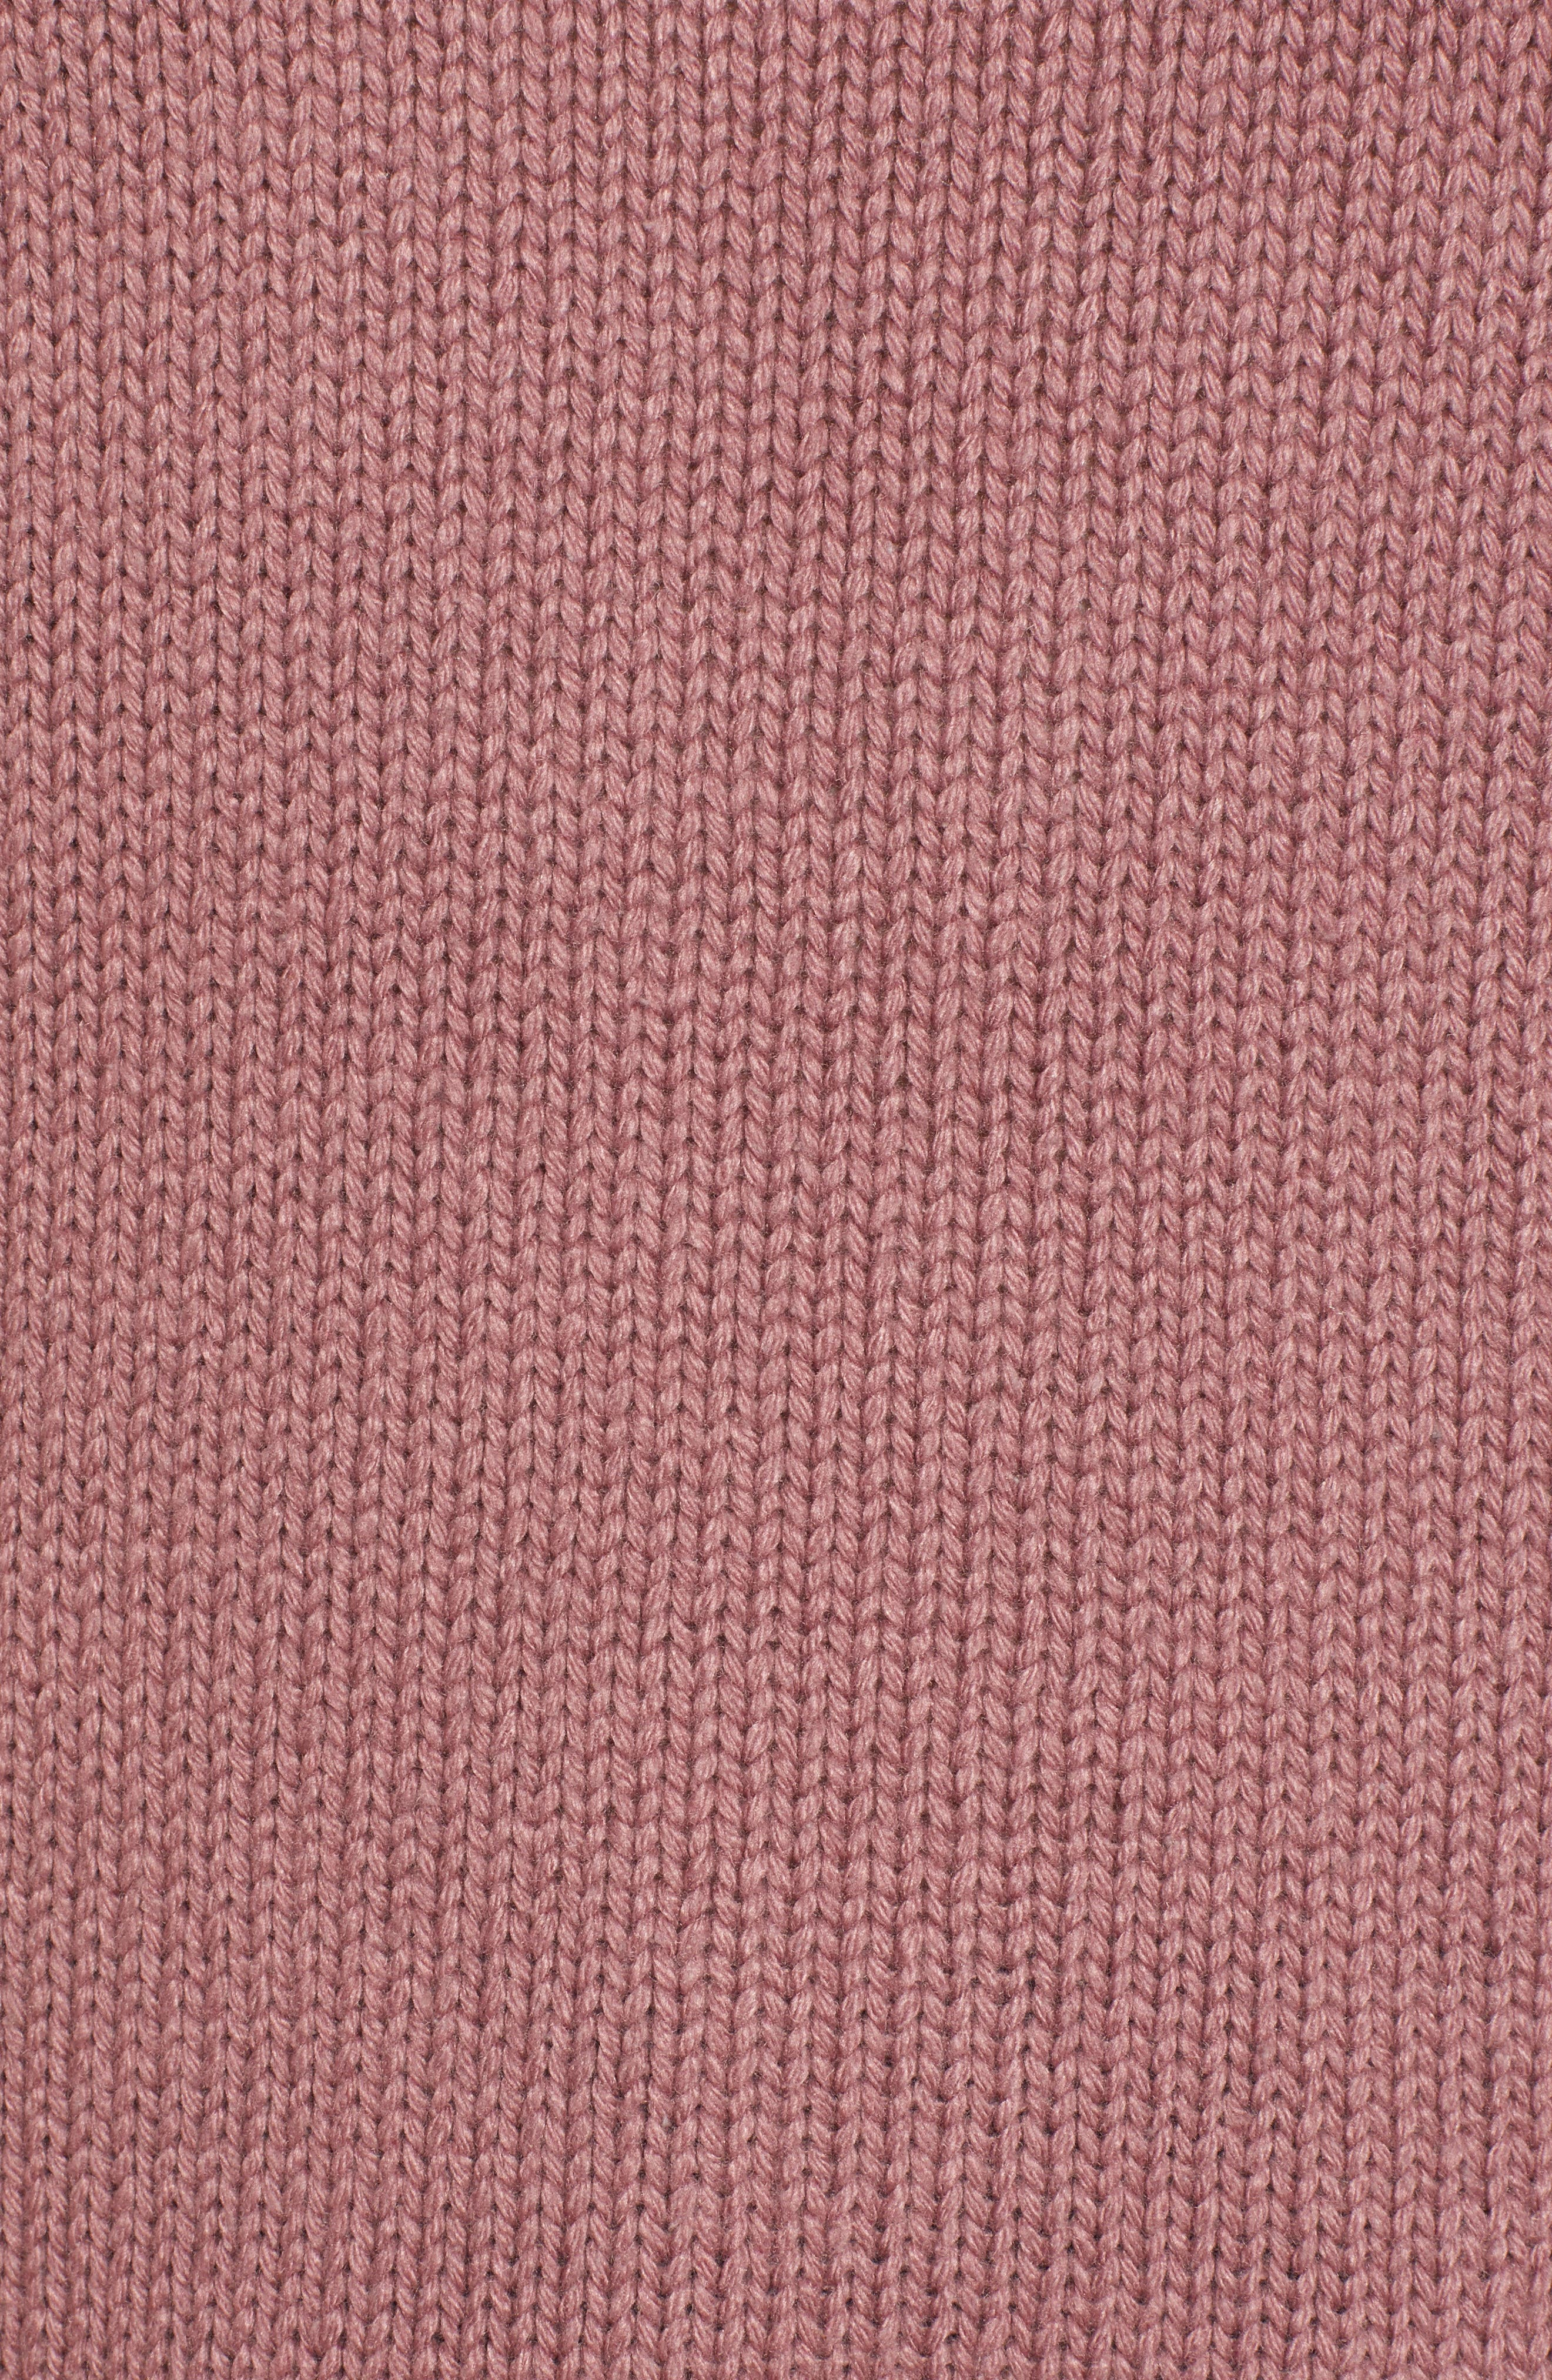 High/Low Turtleneck Sweater,                             Alternate thumbnail 5, color,                             PURPLE TAUPE